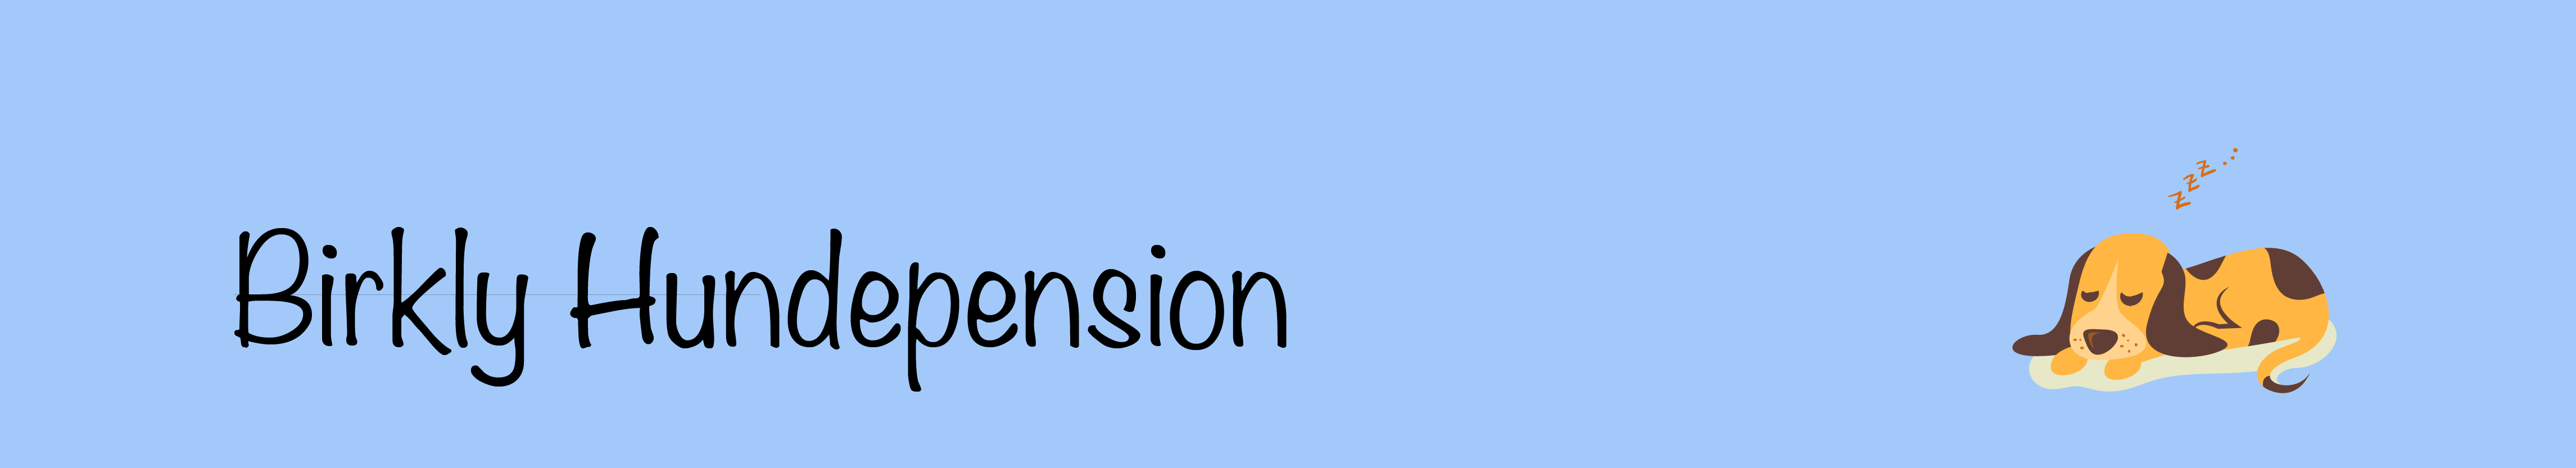 Birkly Hundepension